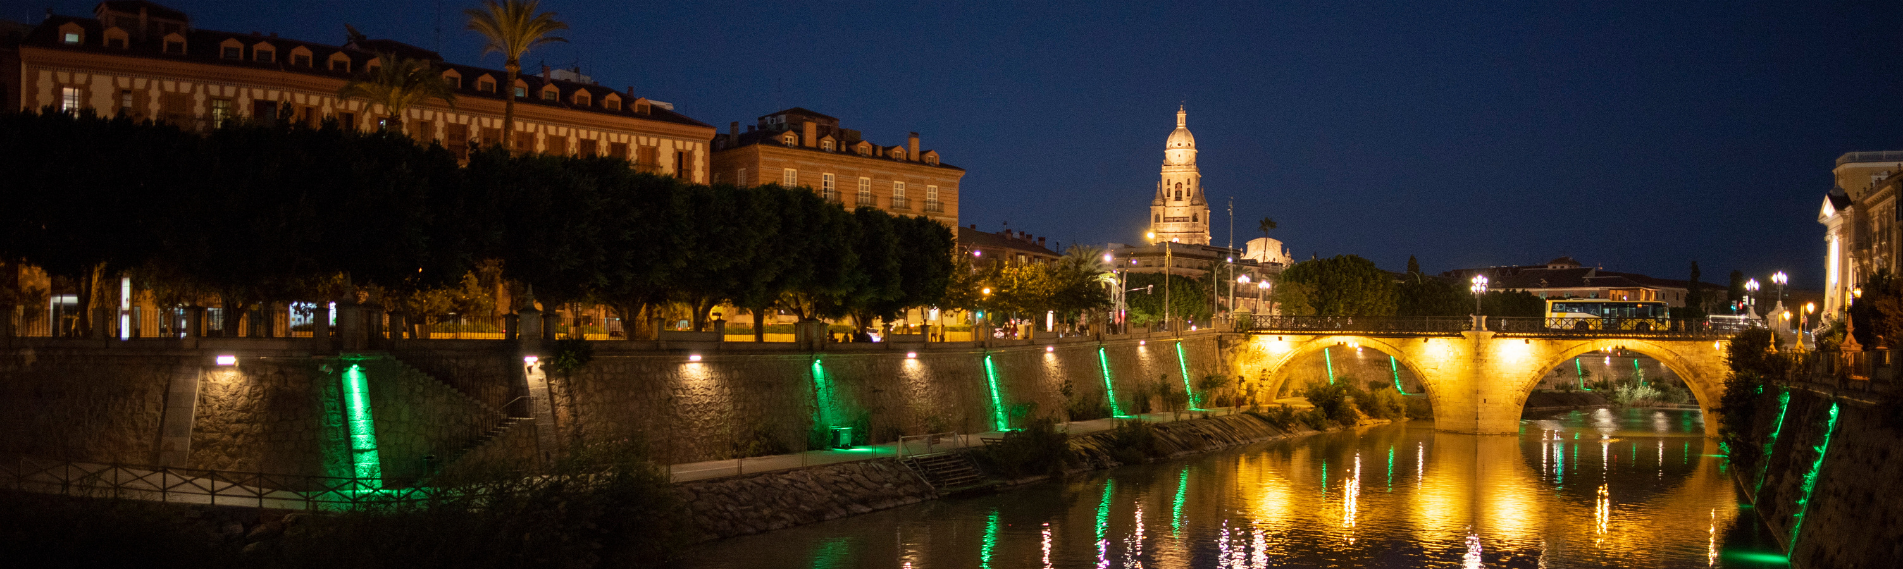 Cameo FLAT PRO series illuminates the riverbanks in Murcia, Spain